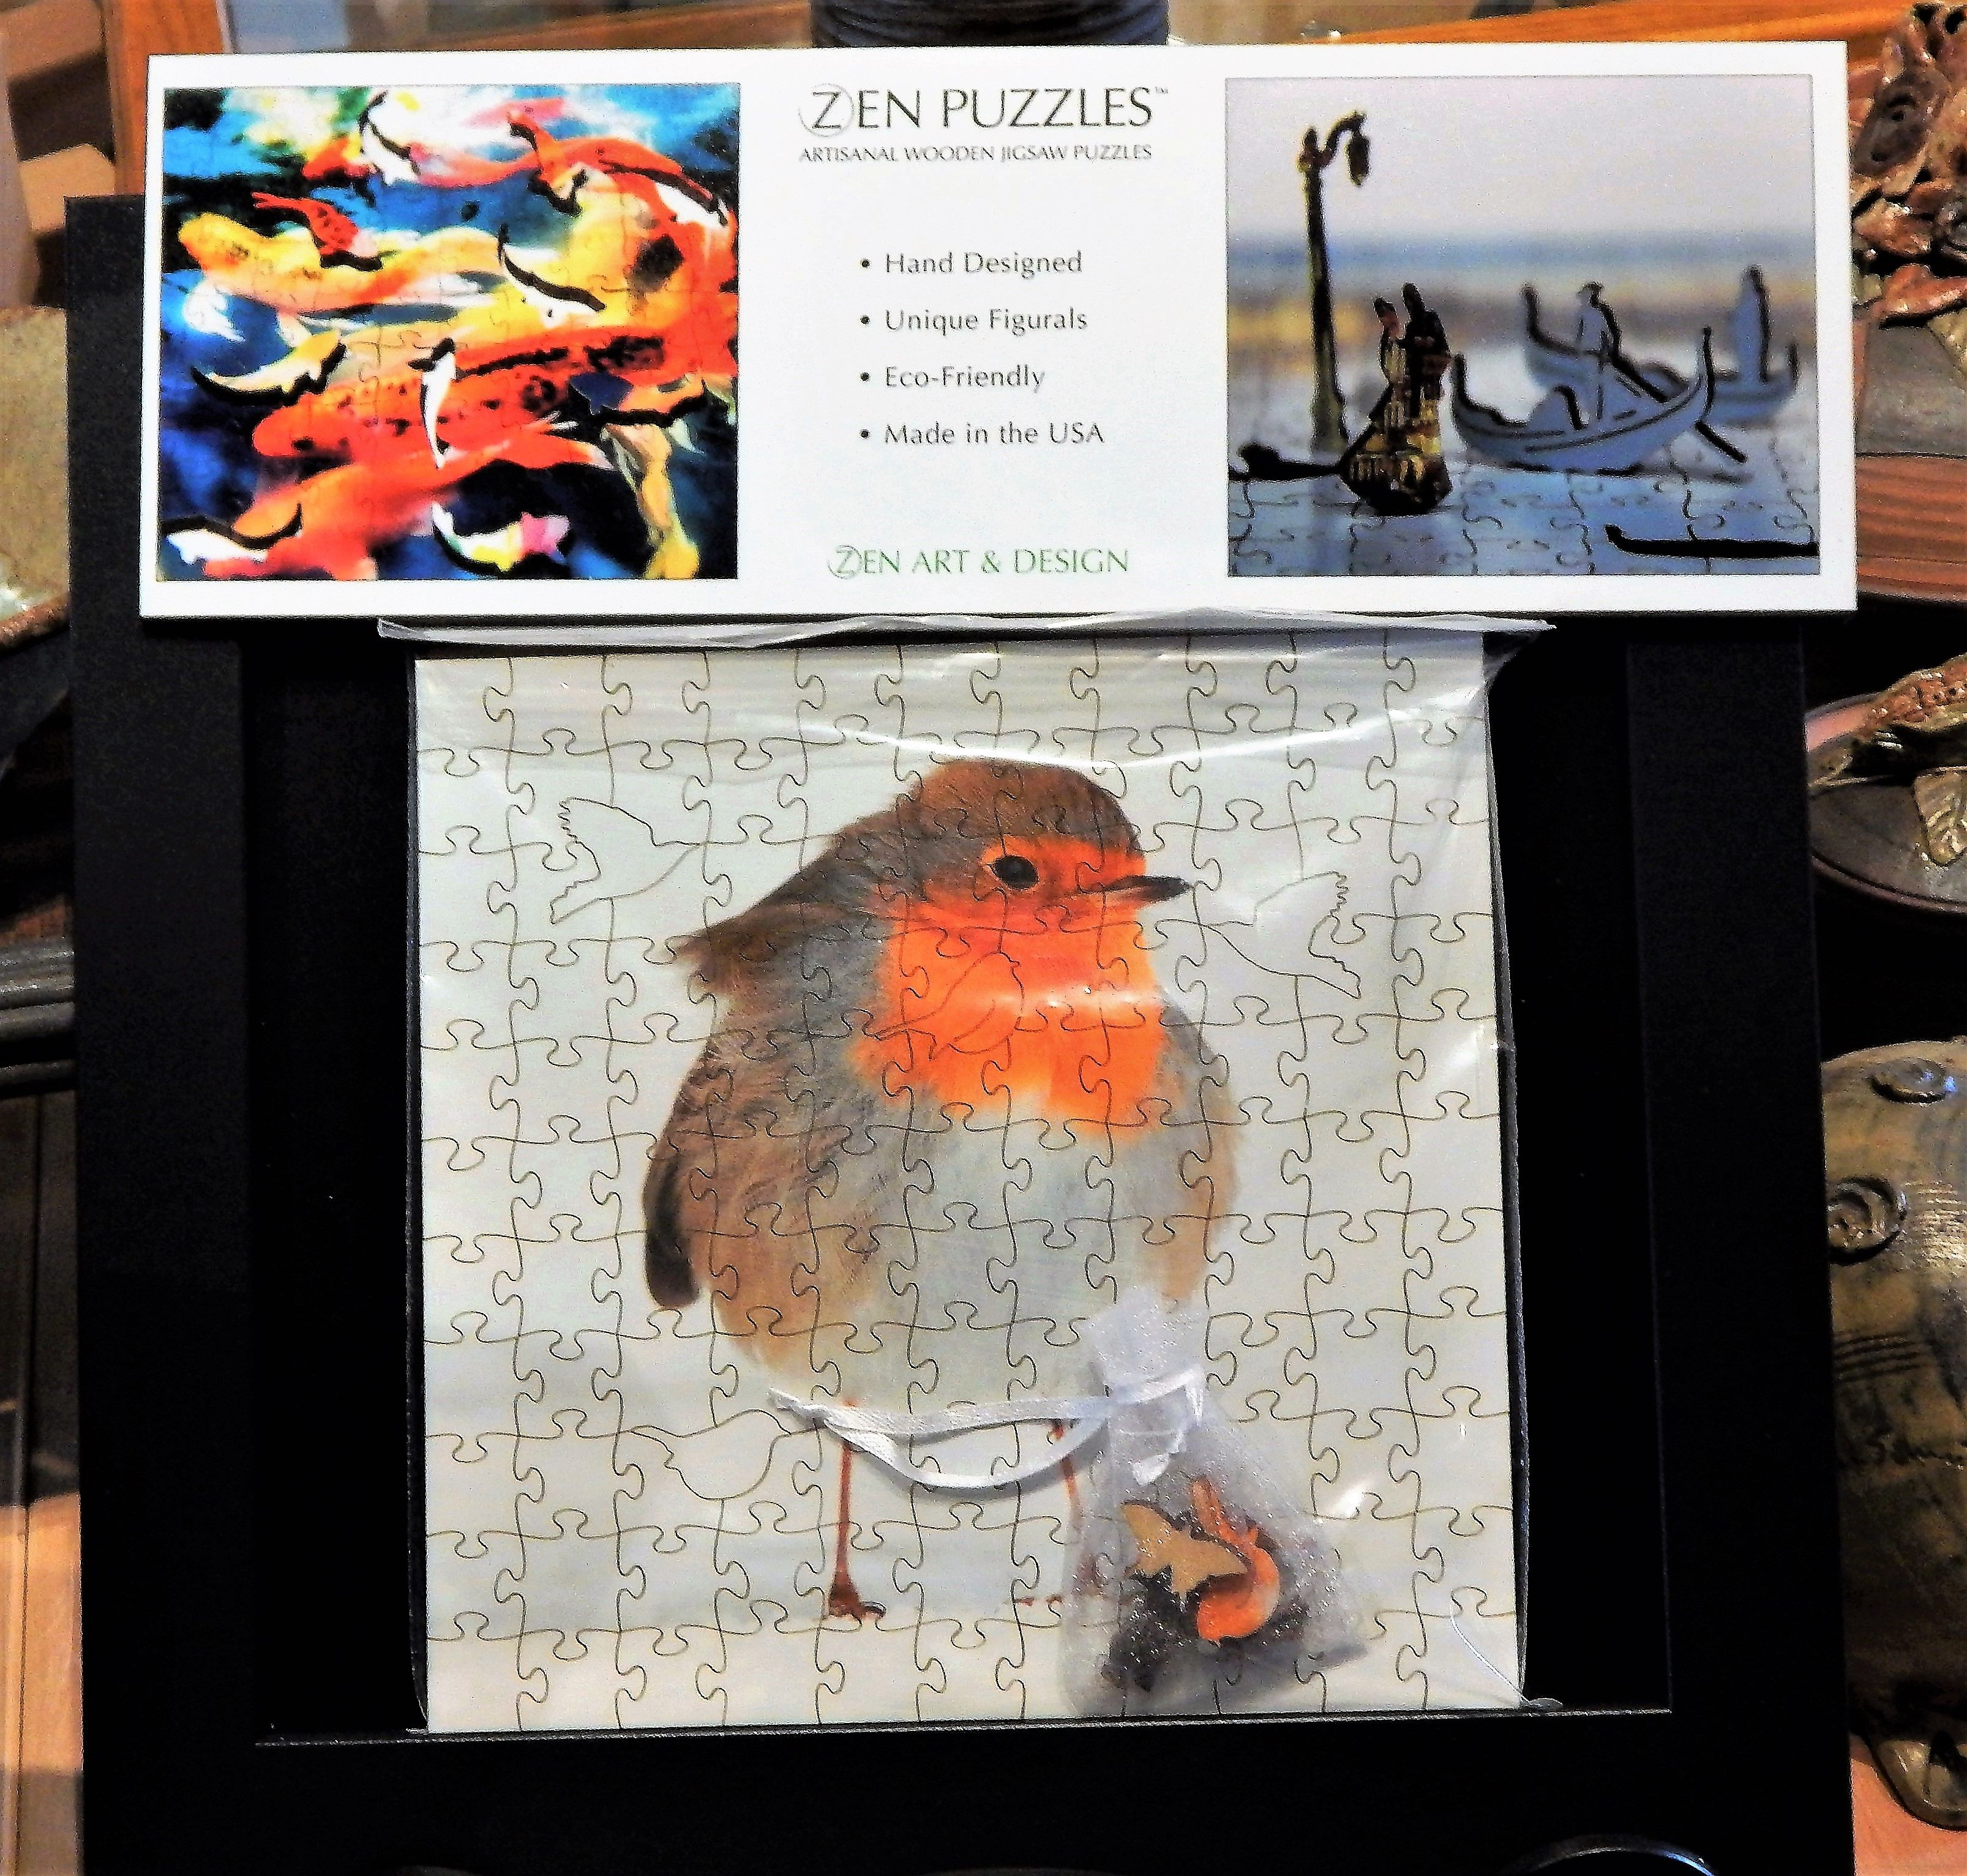 Pin by Artisans Nest in Skippack PA on Zen Puzzles make a